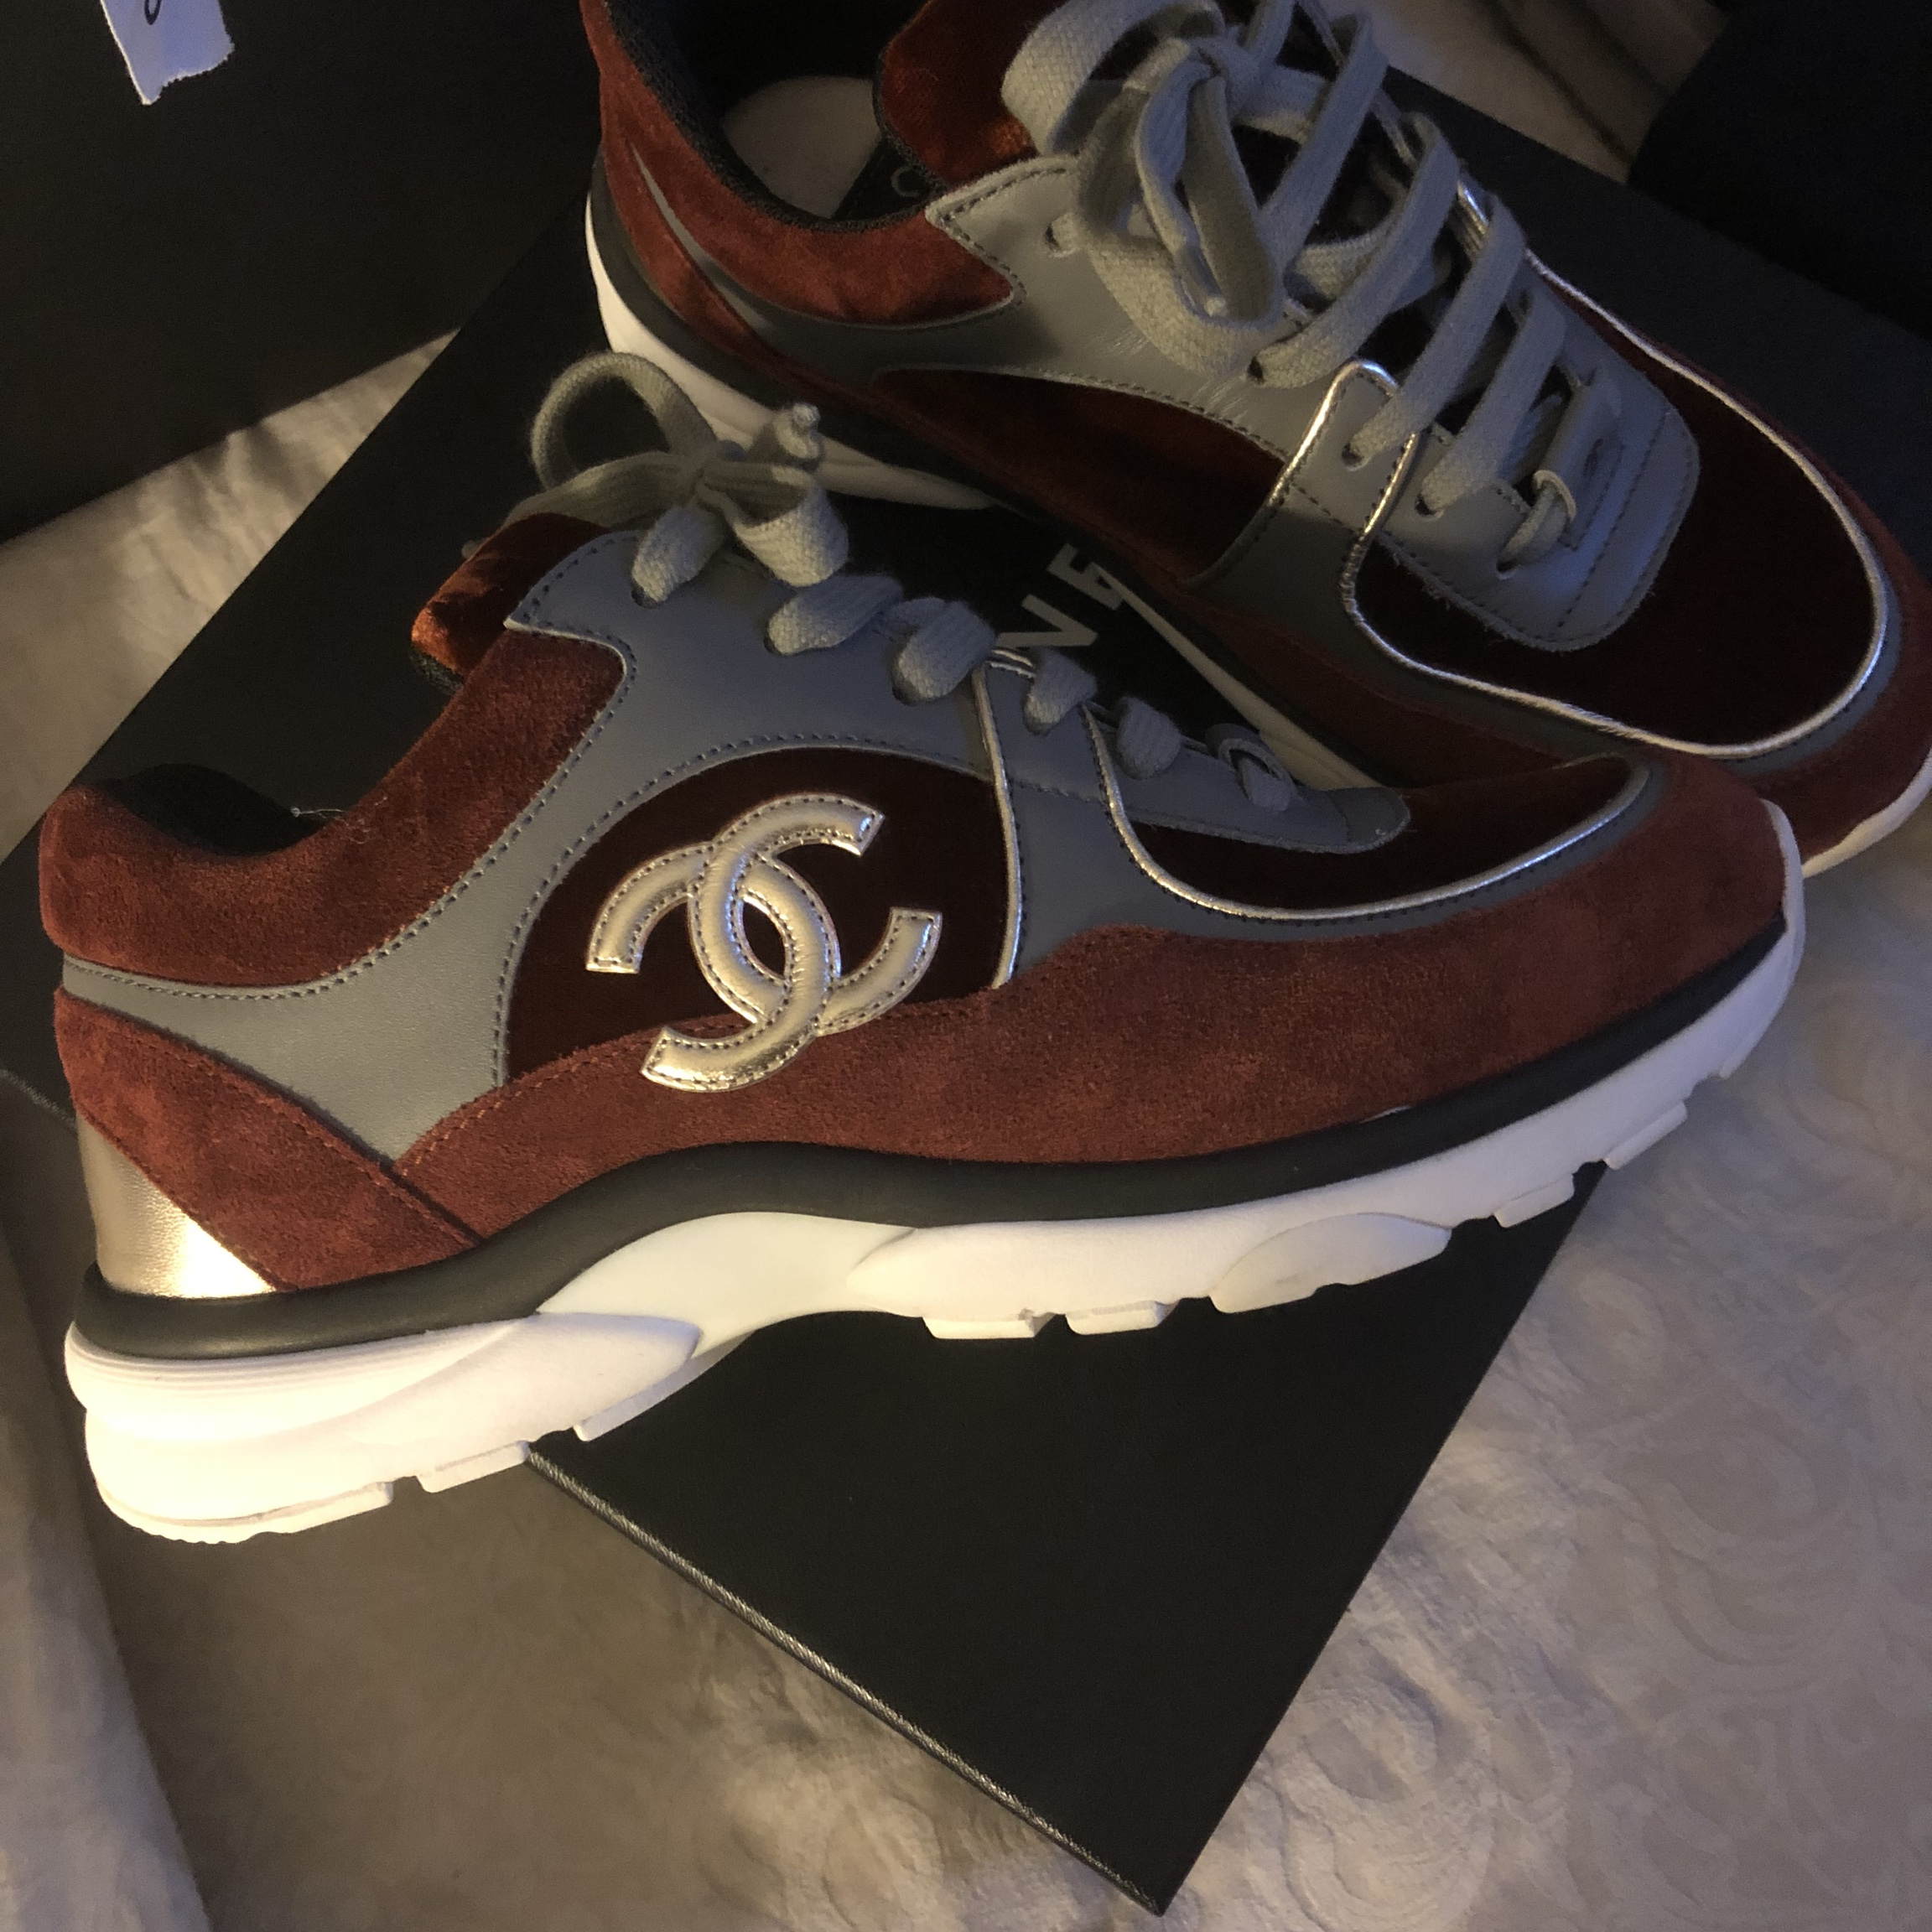 100% Authetic CHANEL Sneakers. In a